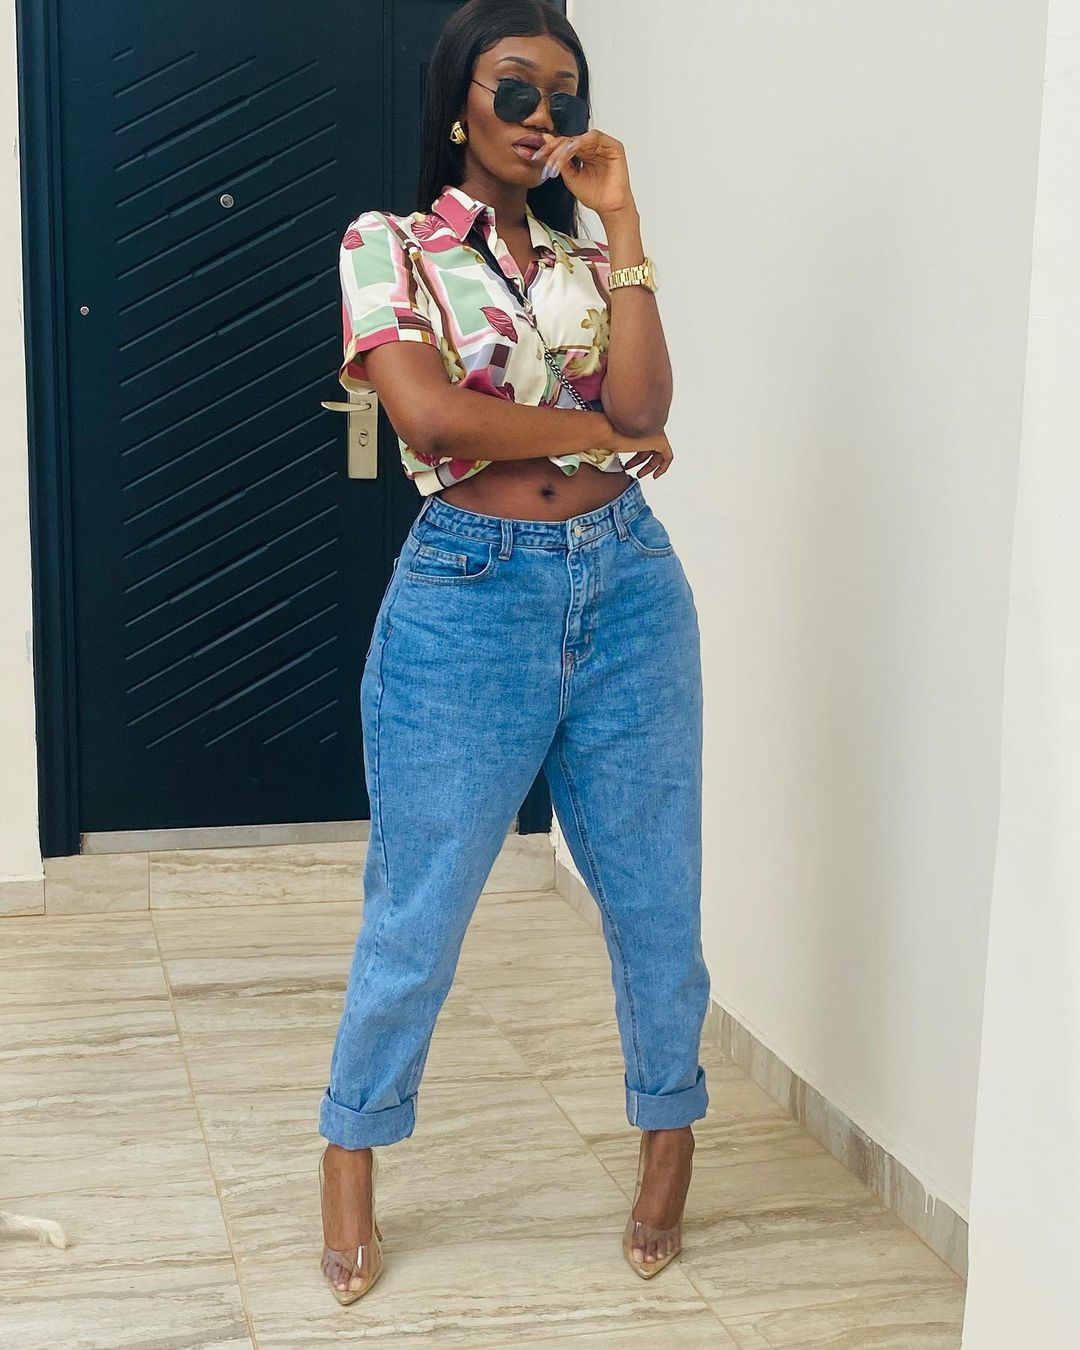 Wendy Shay gives her life to Christ